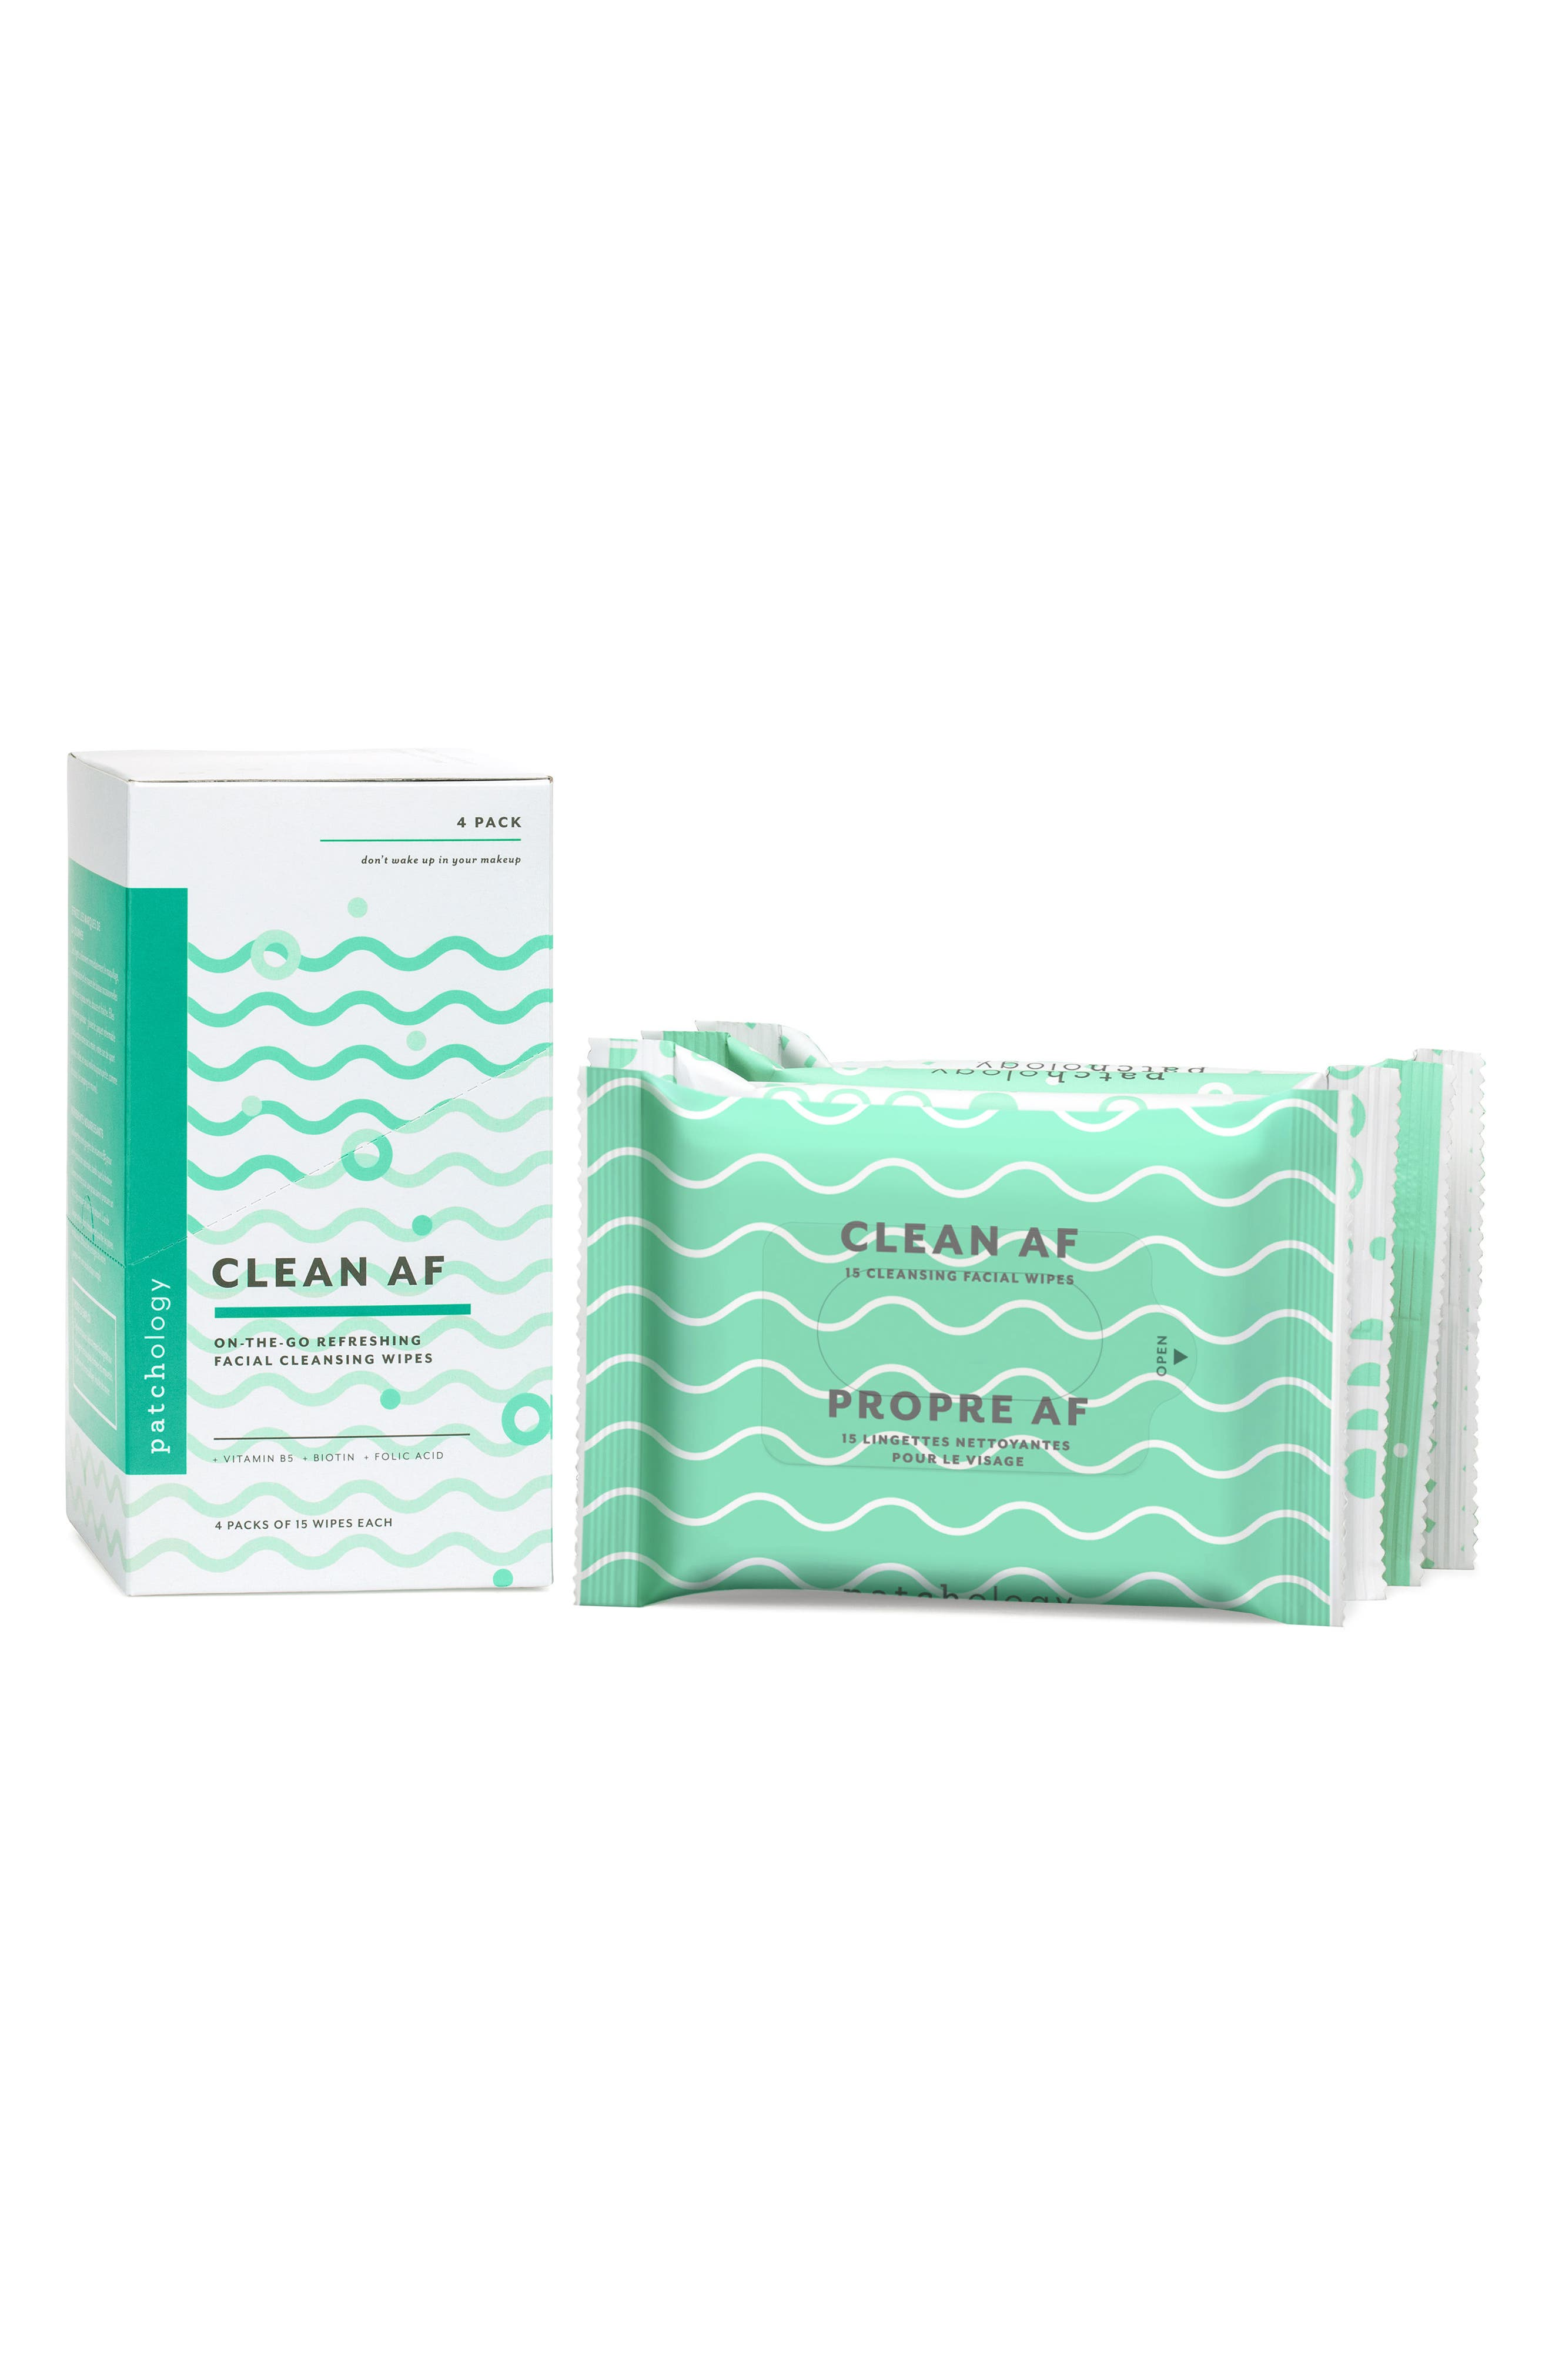 Clean AF On-the-Go Refreshing Facial Cleansing Wipes,                             Main thumbnail 1, color,                             NO COLOR